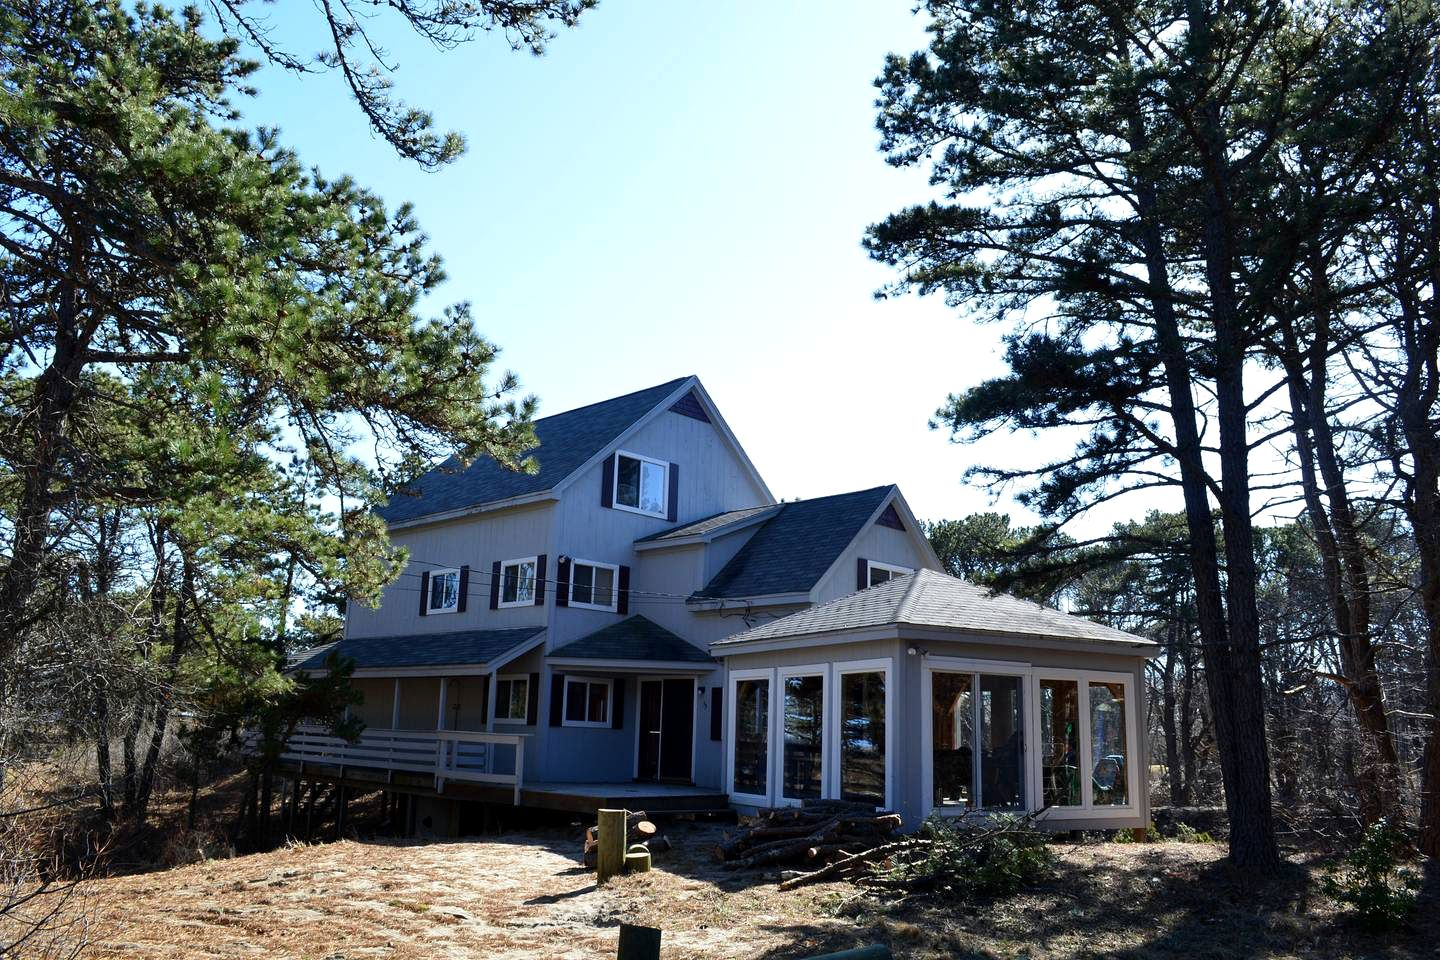 Pet-friendly Popham Beach vacation rentals